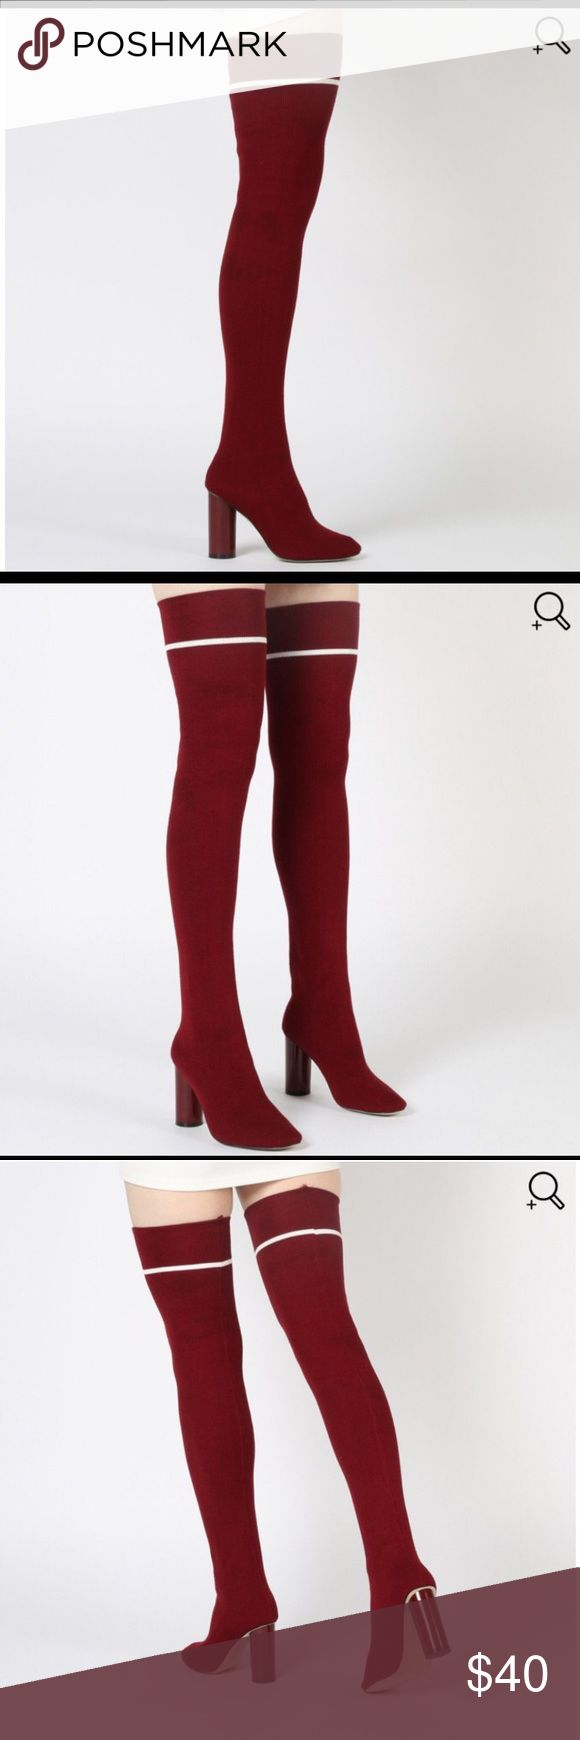 Thigh high sock boots Very stretchy material, Bordeaux with white stripe at top. Only worn once, very cute. Size 9, UK 7, but fits like a US woman's 8. Shoes Over the Knee Boots